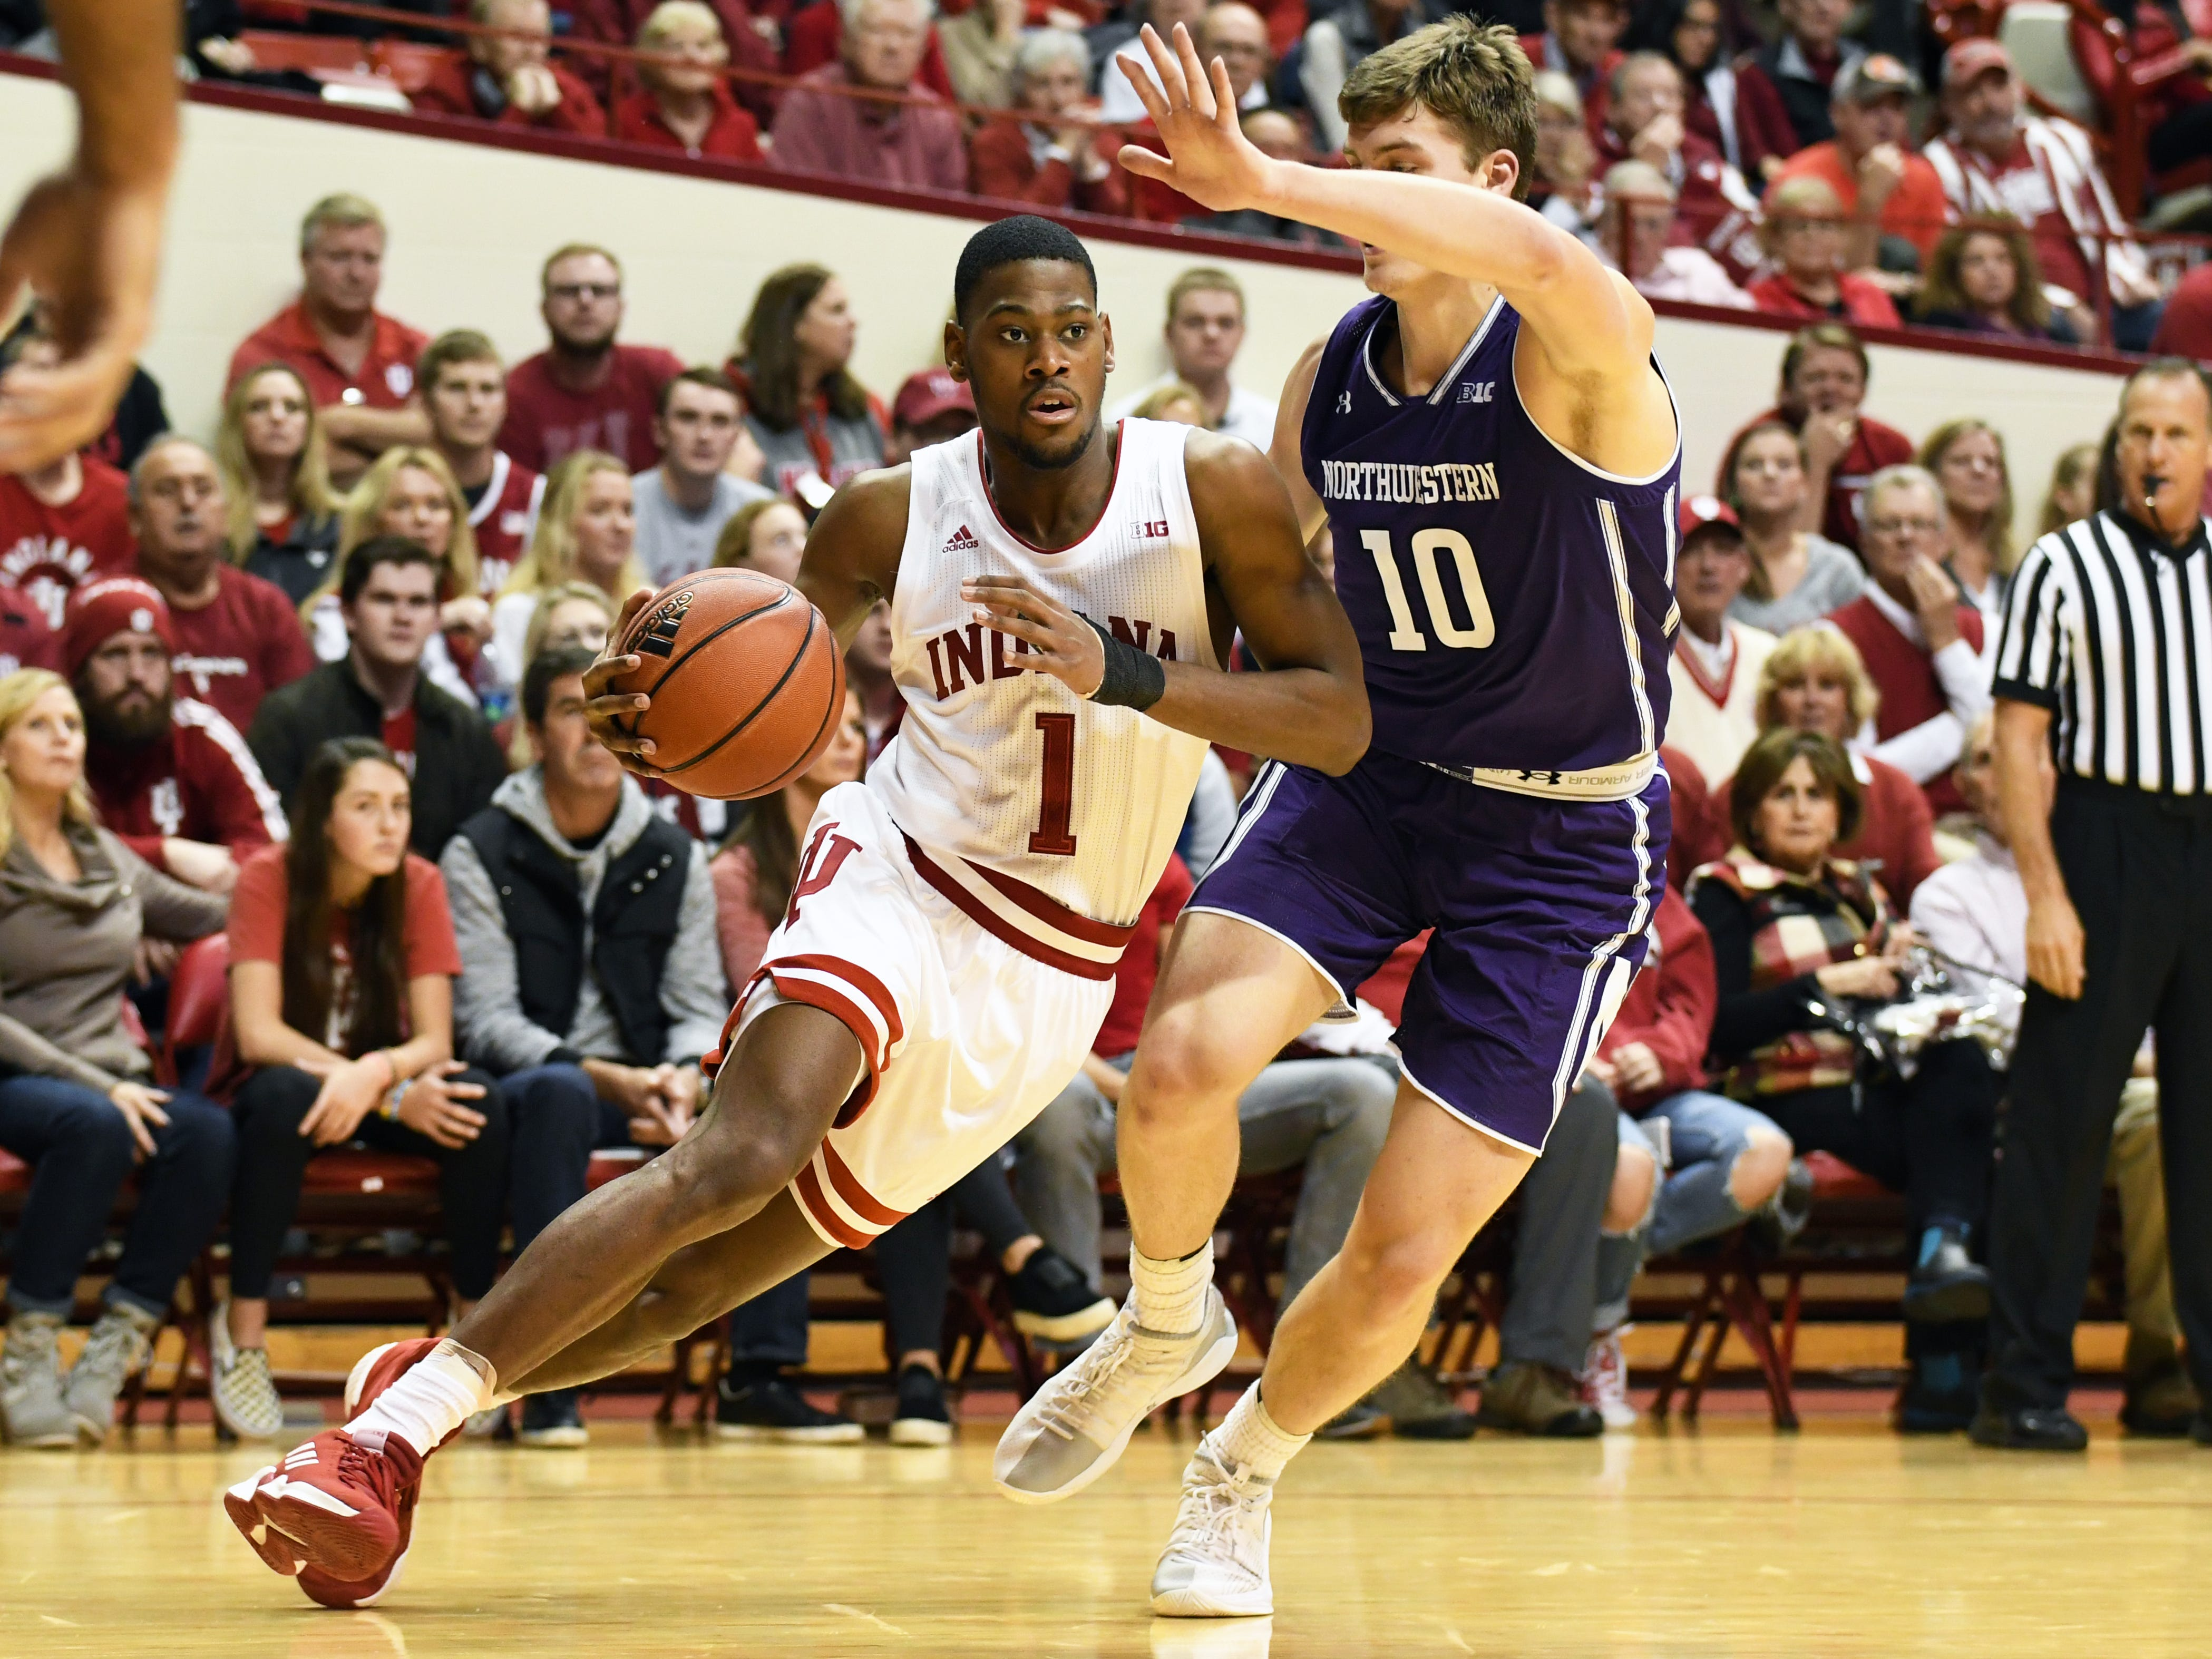 Indiana Hoosiers guard Al Durham (1) drives to the basket during the game against Northwestern at Simon Skjodt Assembly Hall in Bloomington, Ind., on Saturday, Dec. 1, 2018.